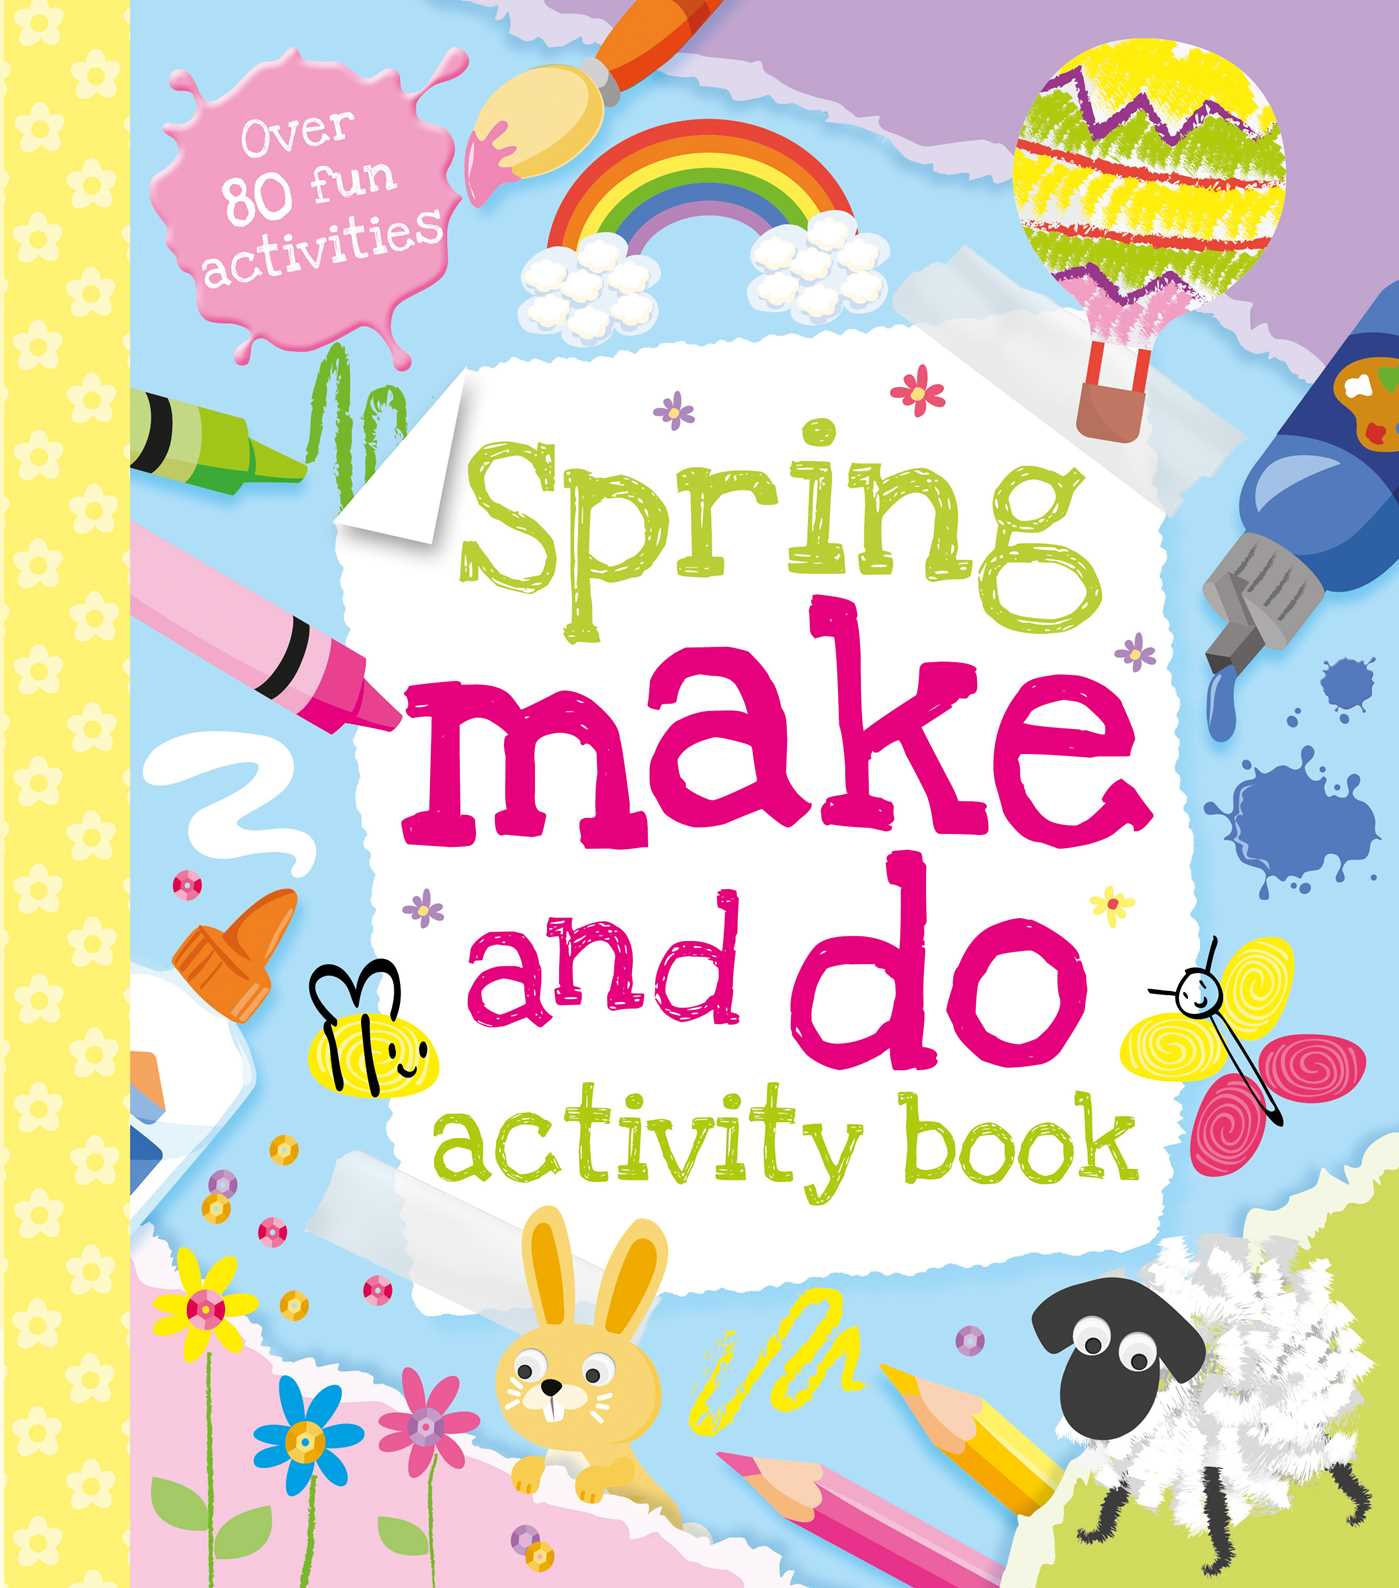 Spring make and do activity book 9781499880830 hr